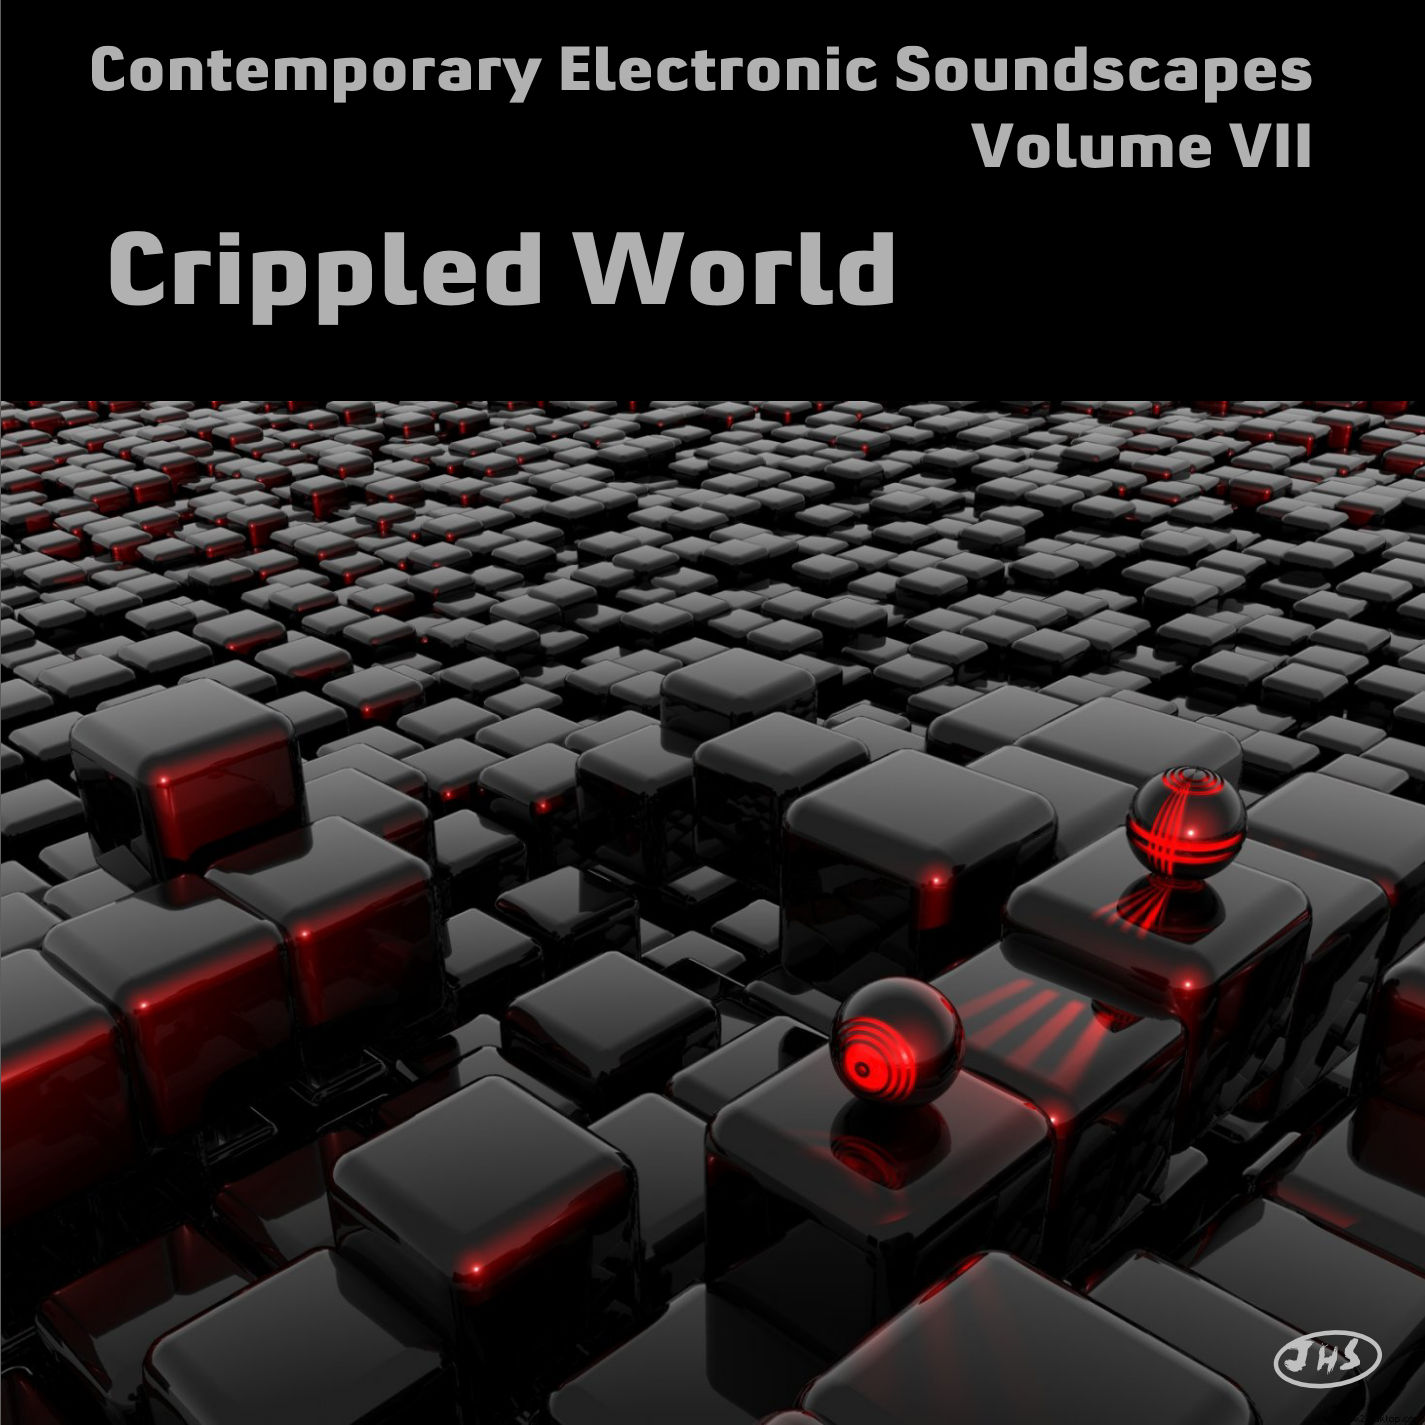 CES Volume VII Crippled World okładka przód 1425x1425